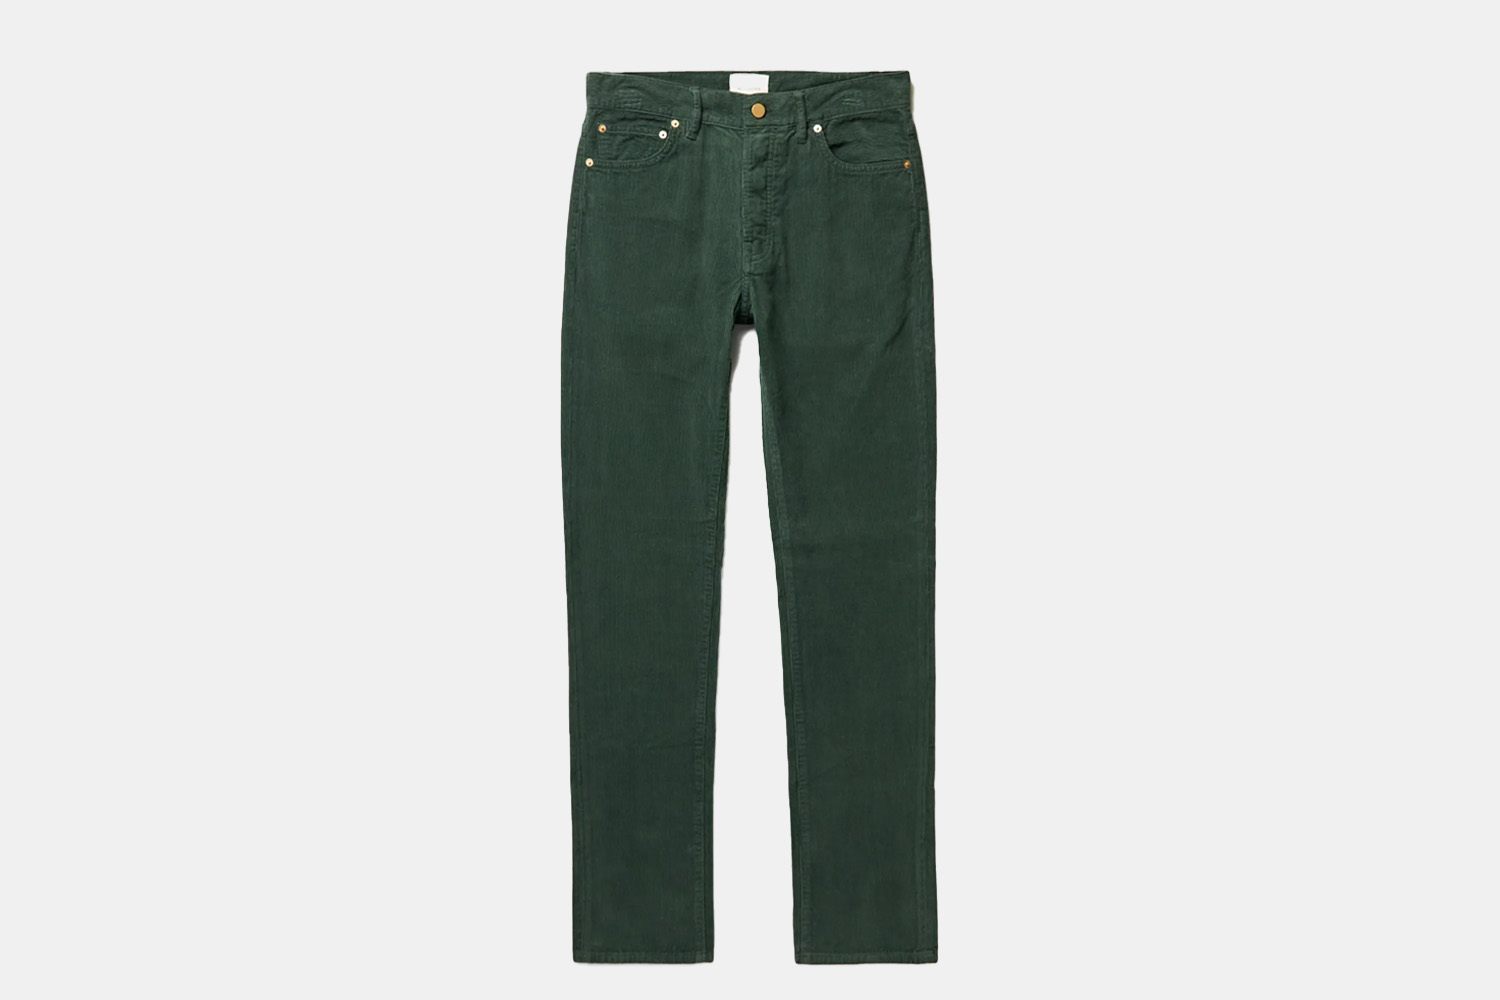 A pair of deep green, slim trousers.